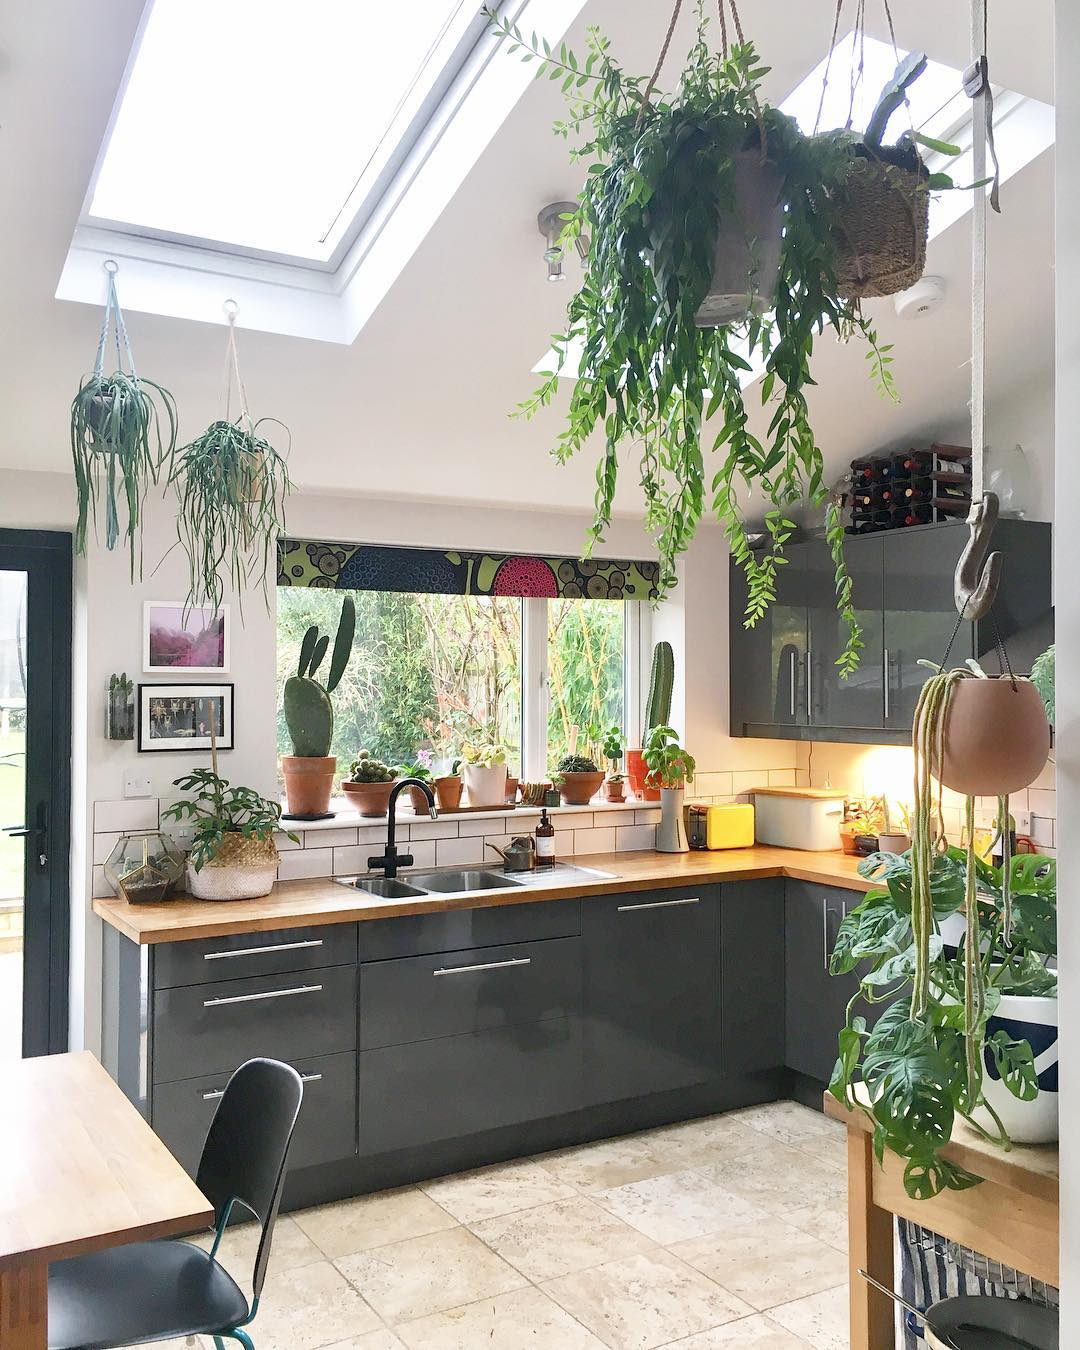 Kitchen of a house with cabinets of gray color and decorated with plants of different types that hang in the ceiling and are placed in the large window